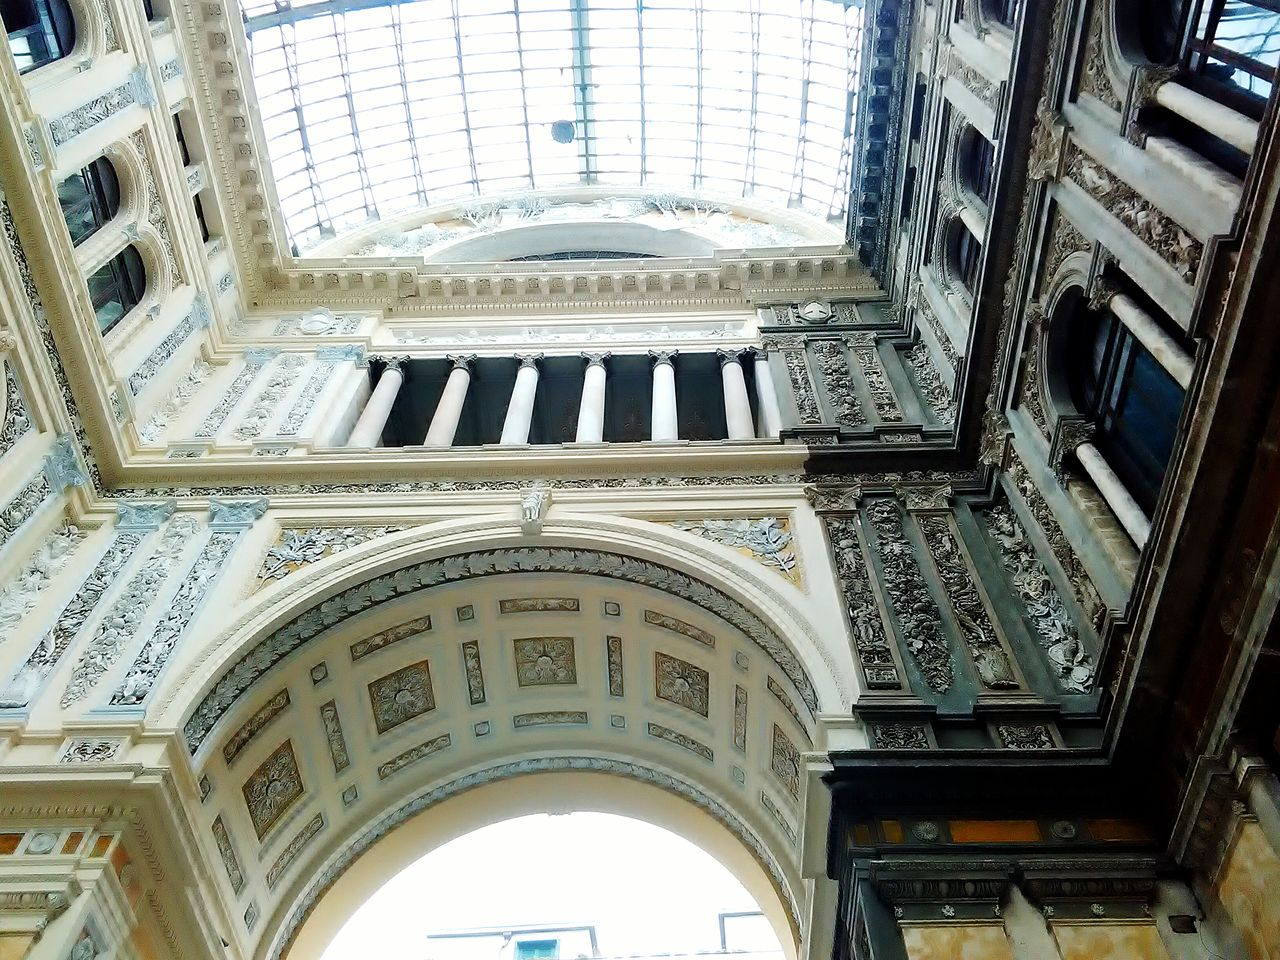 Architecture Built Structure Building Exterior Low Angle View No People Day Arch City Outdoors City Life Backgrounds Travel Destinations Tourism City History Napoli Italy Love Napoli Street Travel Italia City Street South Meandyou Cultures High Angle View